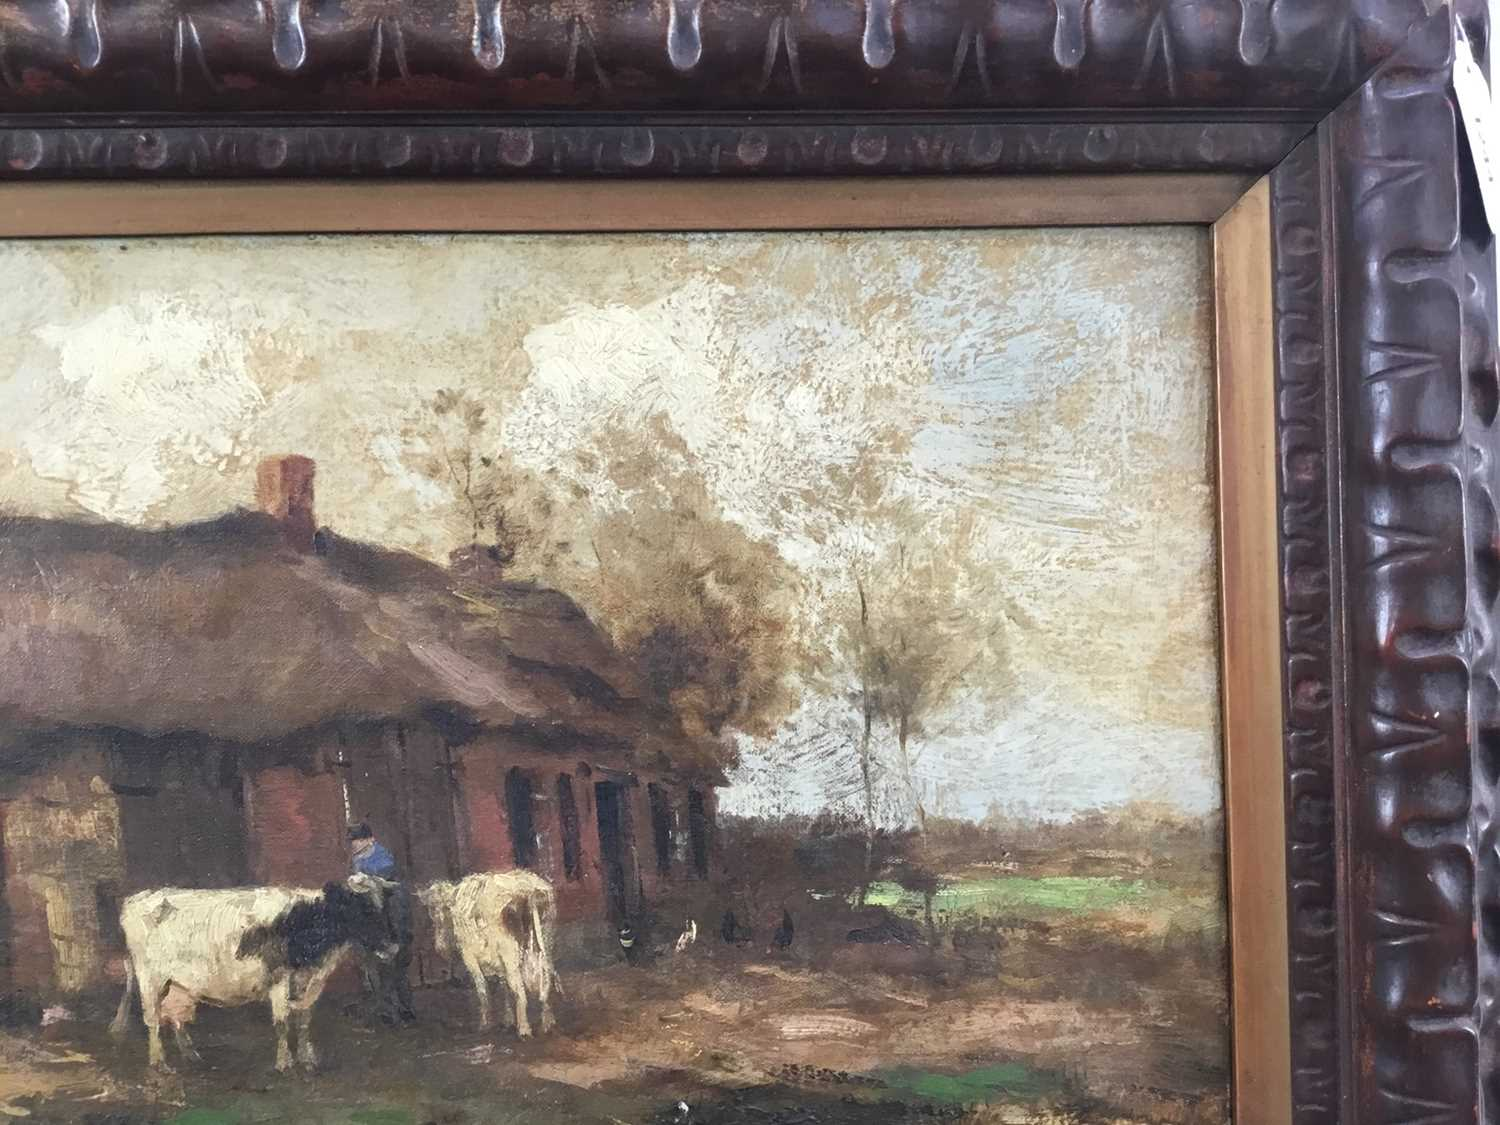 Willem G. F. Jansen (1871-1949) oil on canvas Figure and cattle in landscape - Image 6 of 10